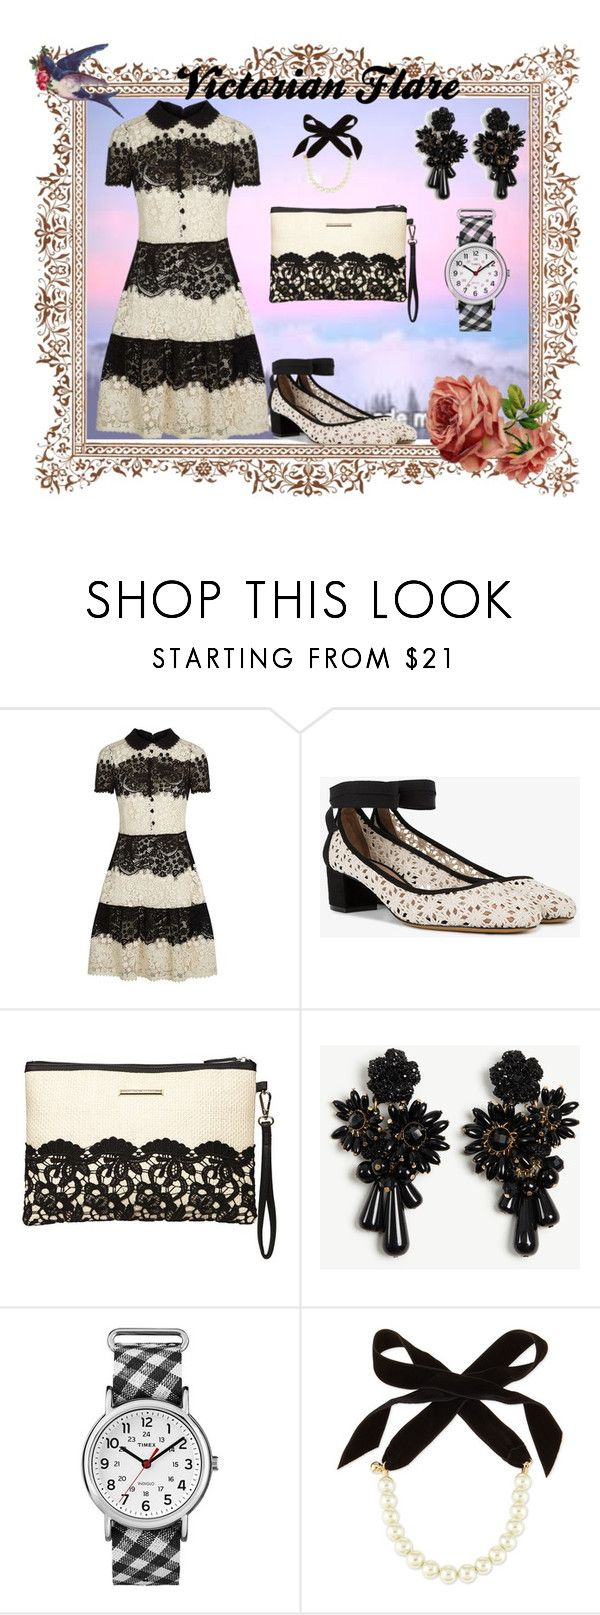 """Victorian Flare"" by flowerbud77 on Polyvore featuring moda, RED Valentino, Tabitha Simmons, Dorothy Perkins, Ann Taylor, Timex, Lulu Frost, blackandwhite, embroidered y victorian"